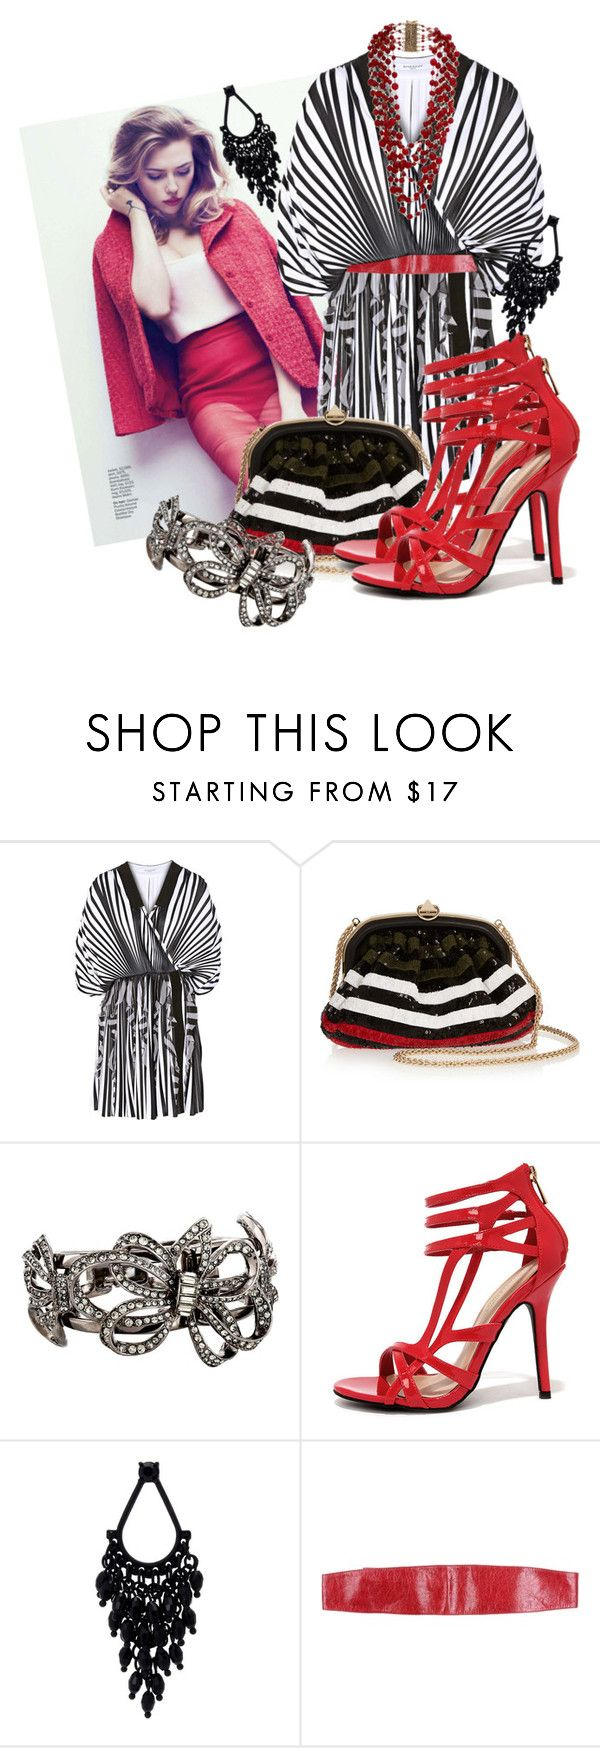 """Scarlett"" by inesi ❤ liked on Polyvore featuring Givenchy, Sonia Rykiel, Oscar de la Renta, Wild Diva, Oasis, Tru Trussardi and Rosantica"